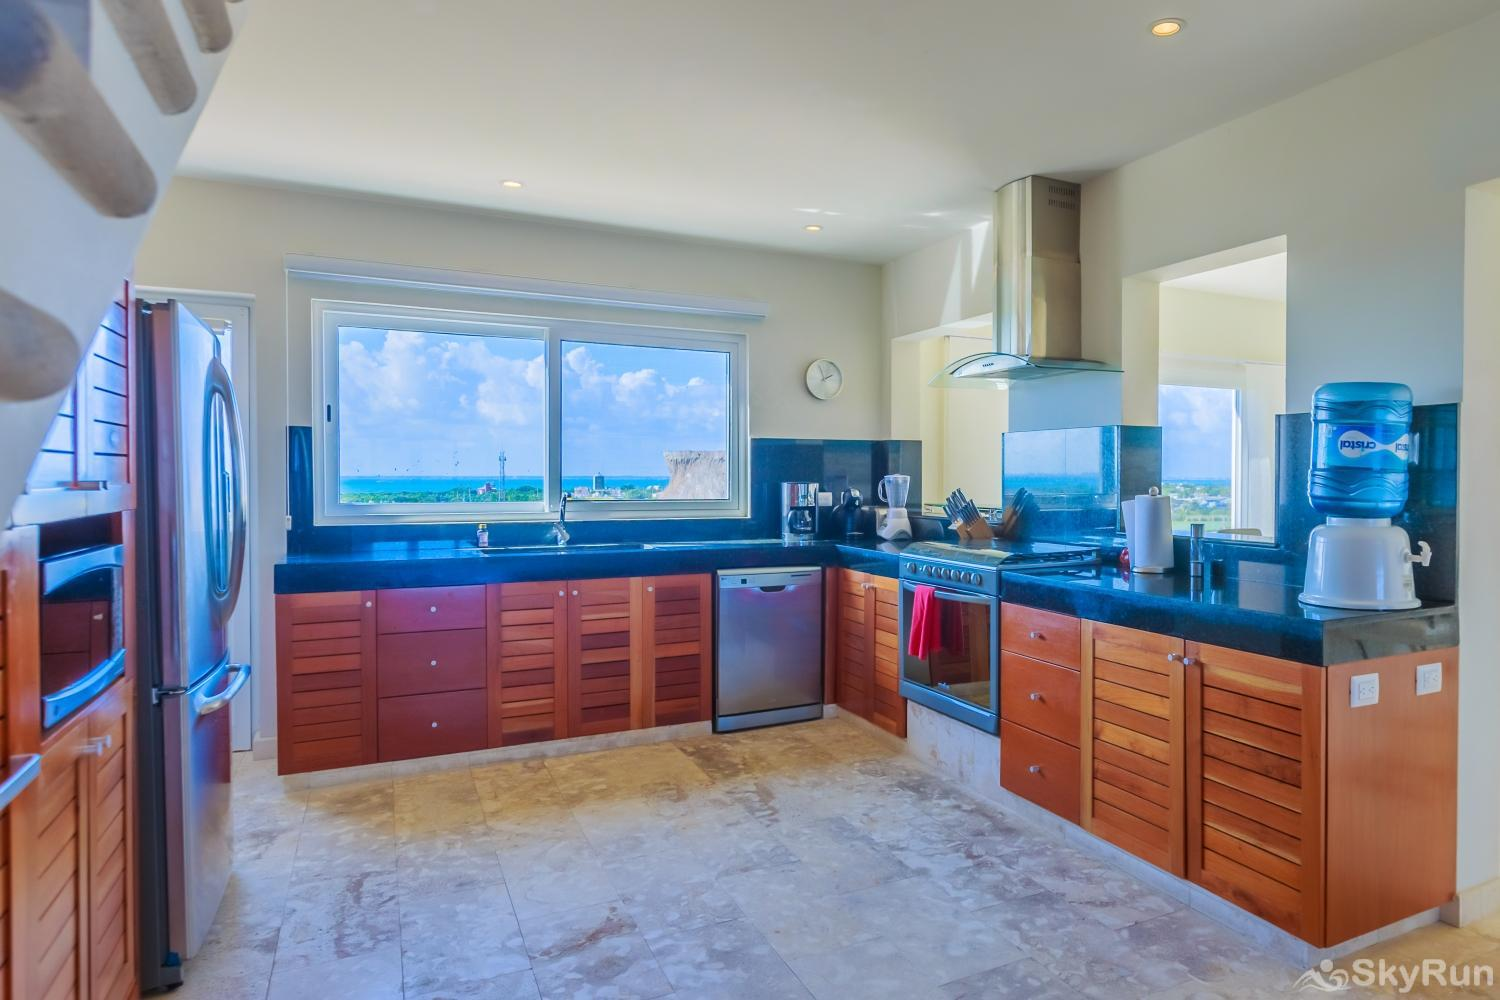 Oceanfront Penthouse | Isla Mujeres | Private Pool | Resort Amenities | Prime location | 3 bedroom | Oceanview Gourmet fully equipped kitchen